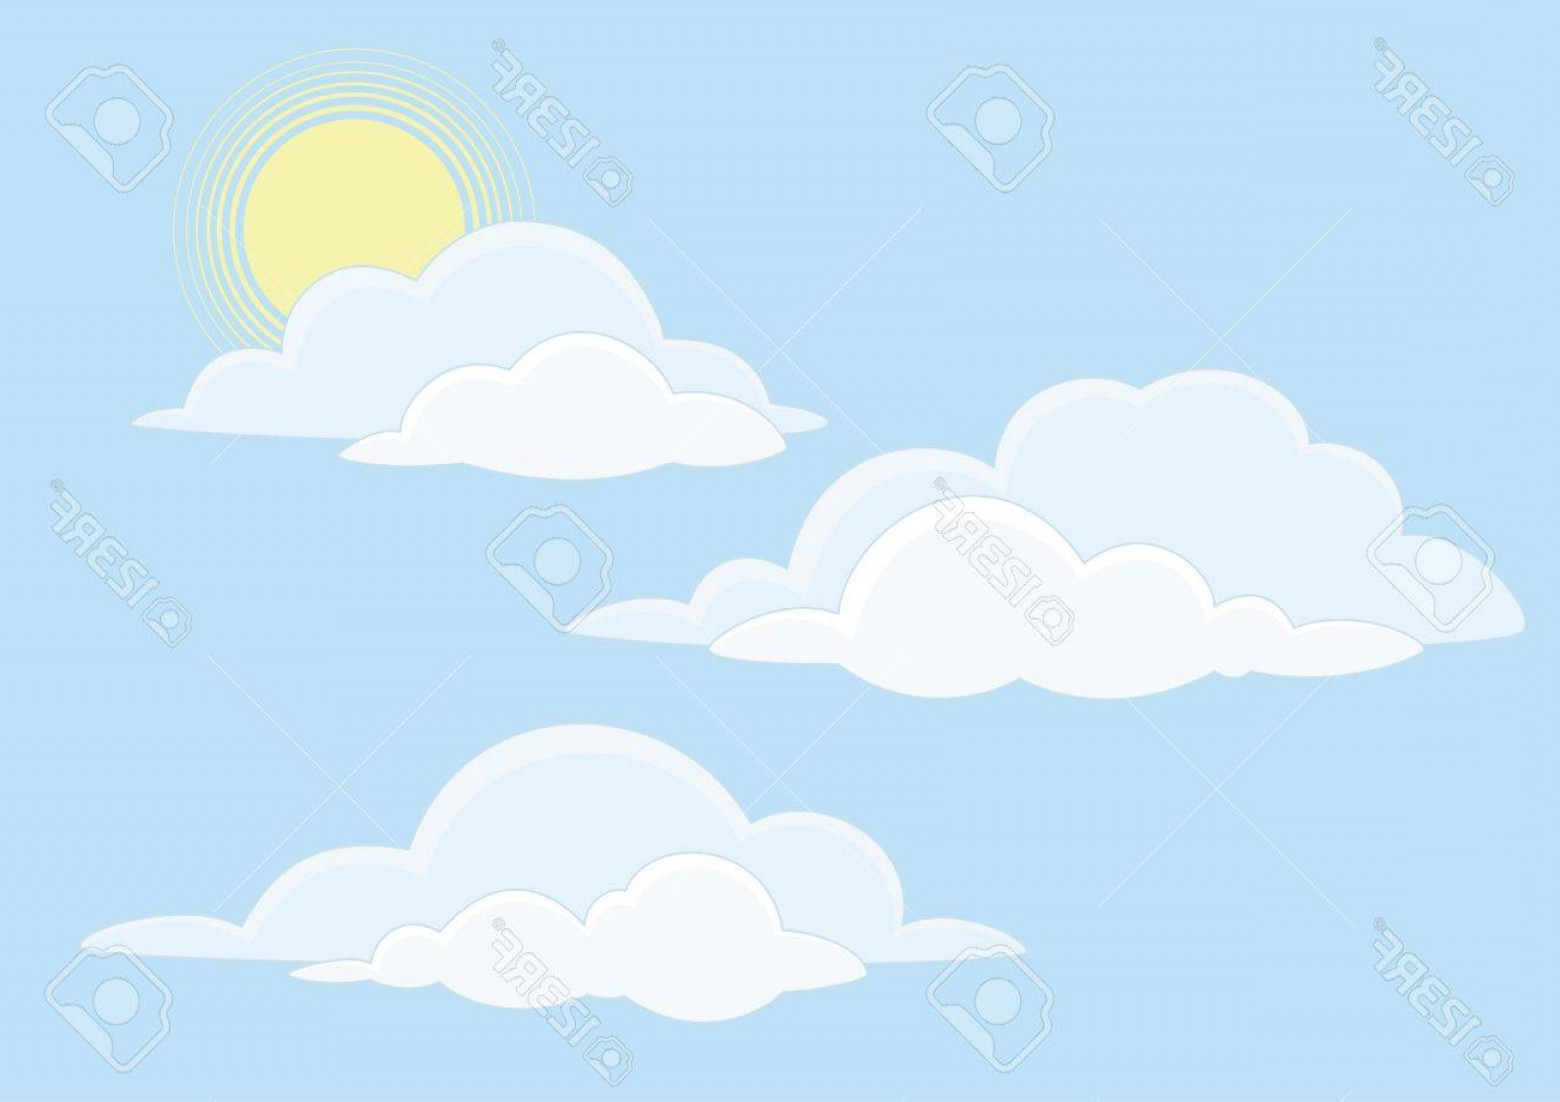 Blue Background Vector Cartoon Sun: Photocloudscape Background White Clouds And Sun On Blue Sky